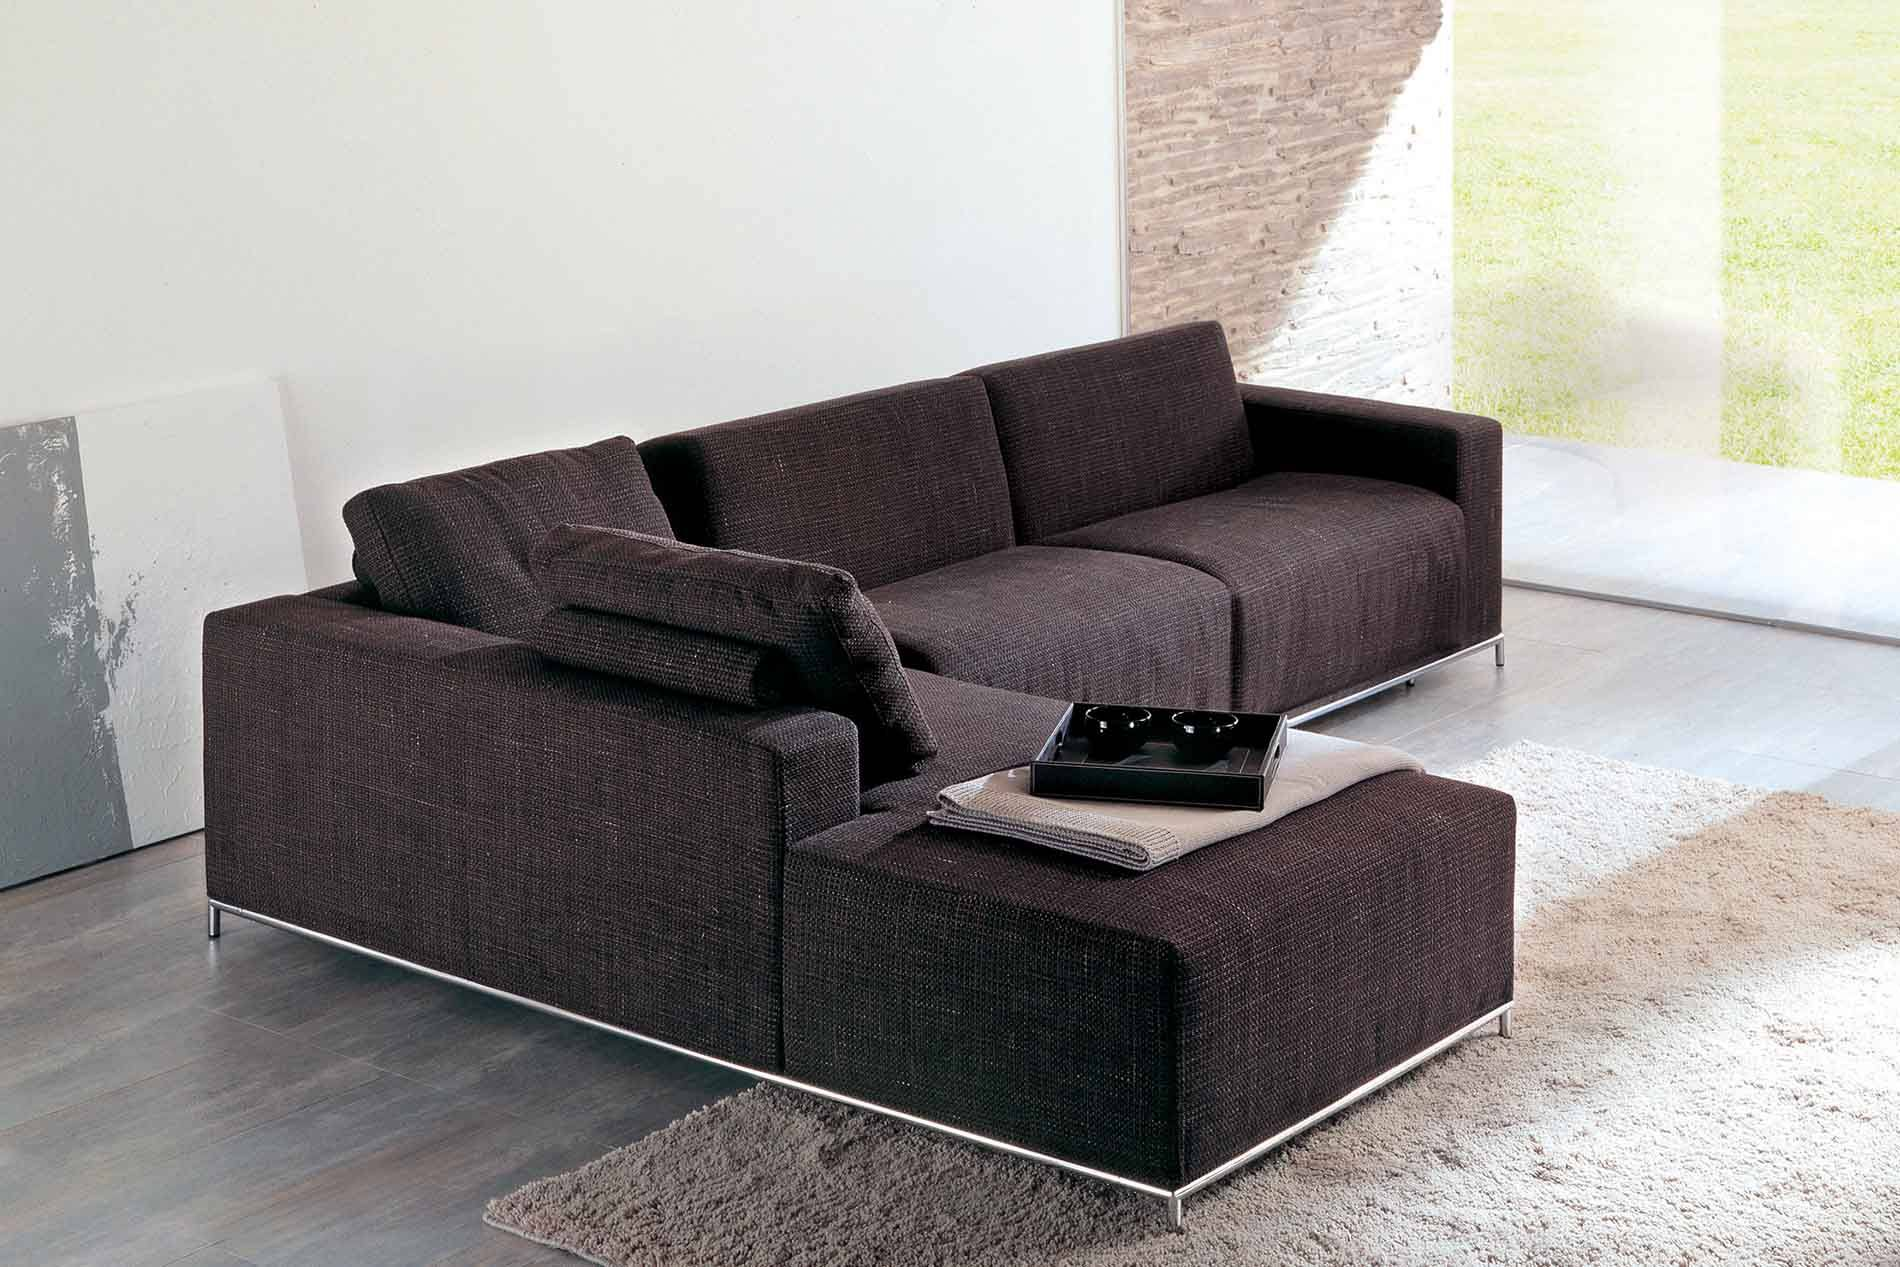 ecksofa mit lattenrost und matratze finest schlafsofa design sofa mit matratze und lattenrost. Black Bedroom Furniture Sets. Home Design Ideas